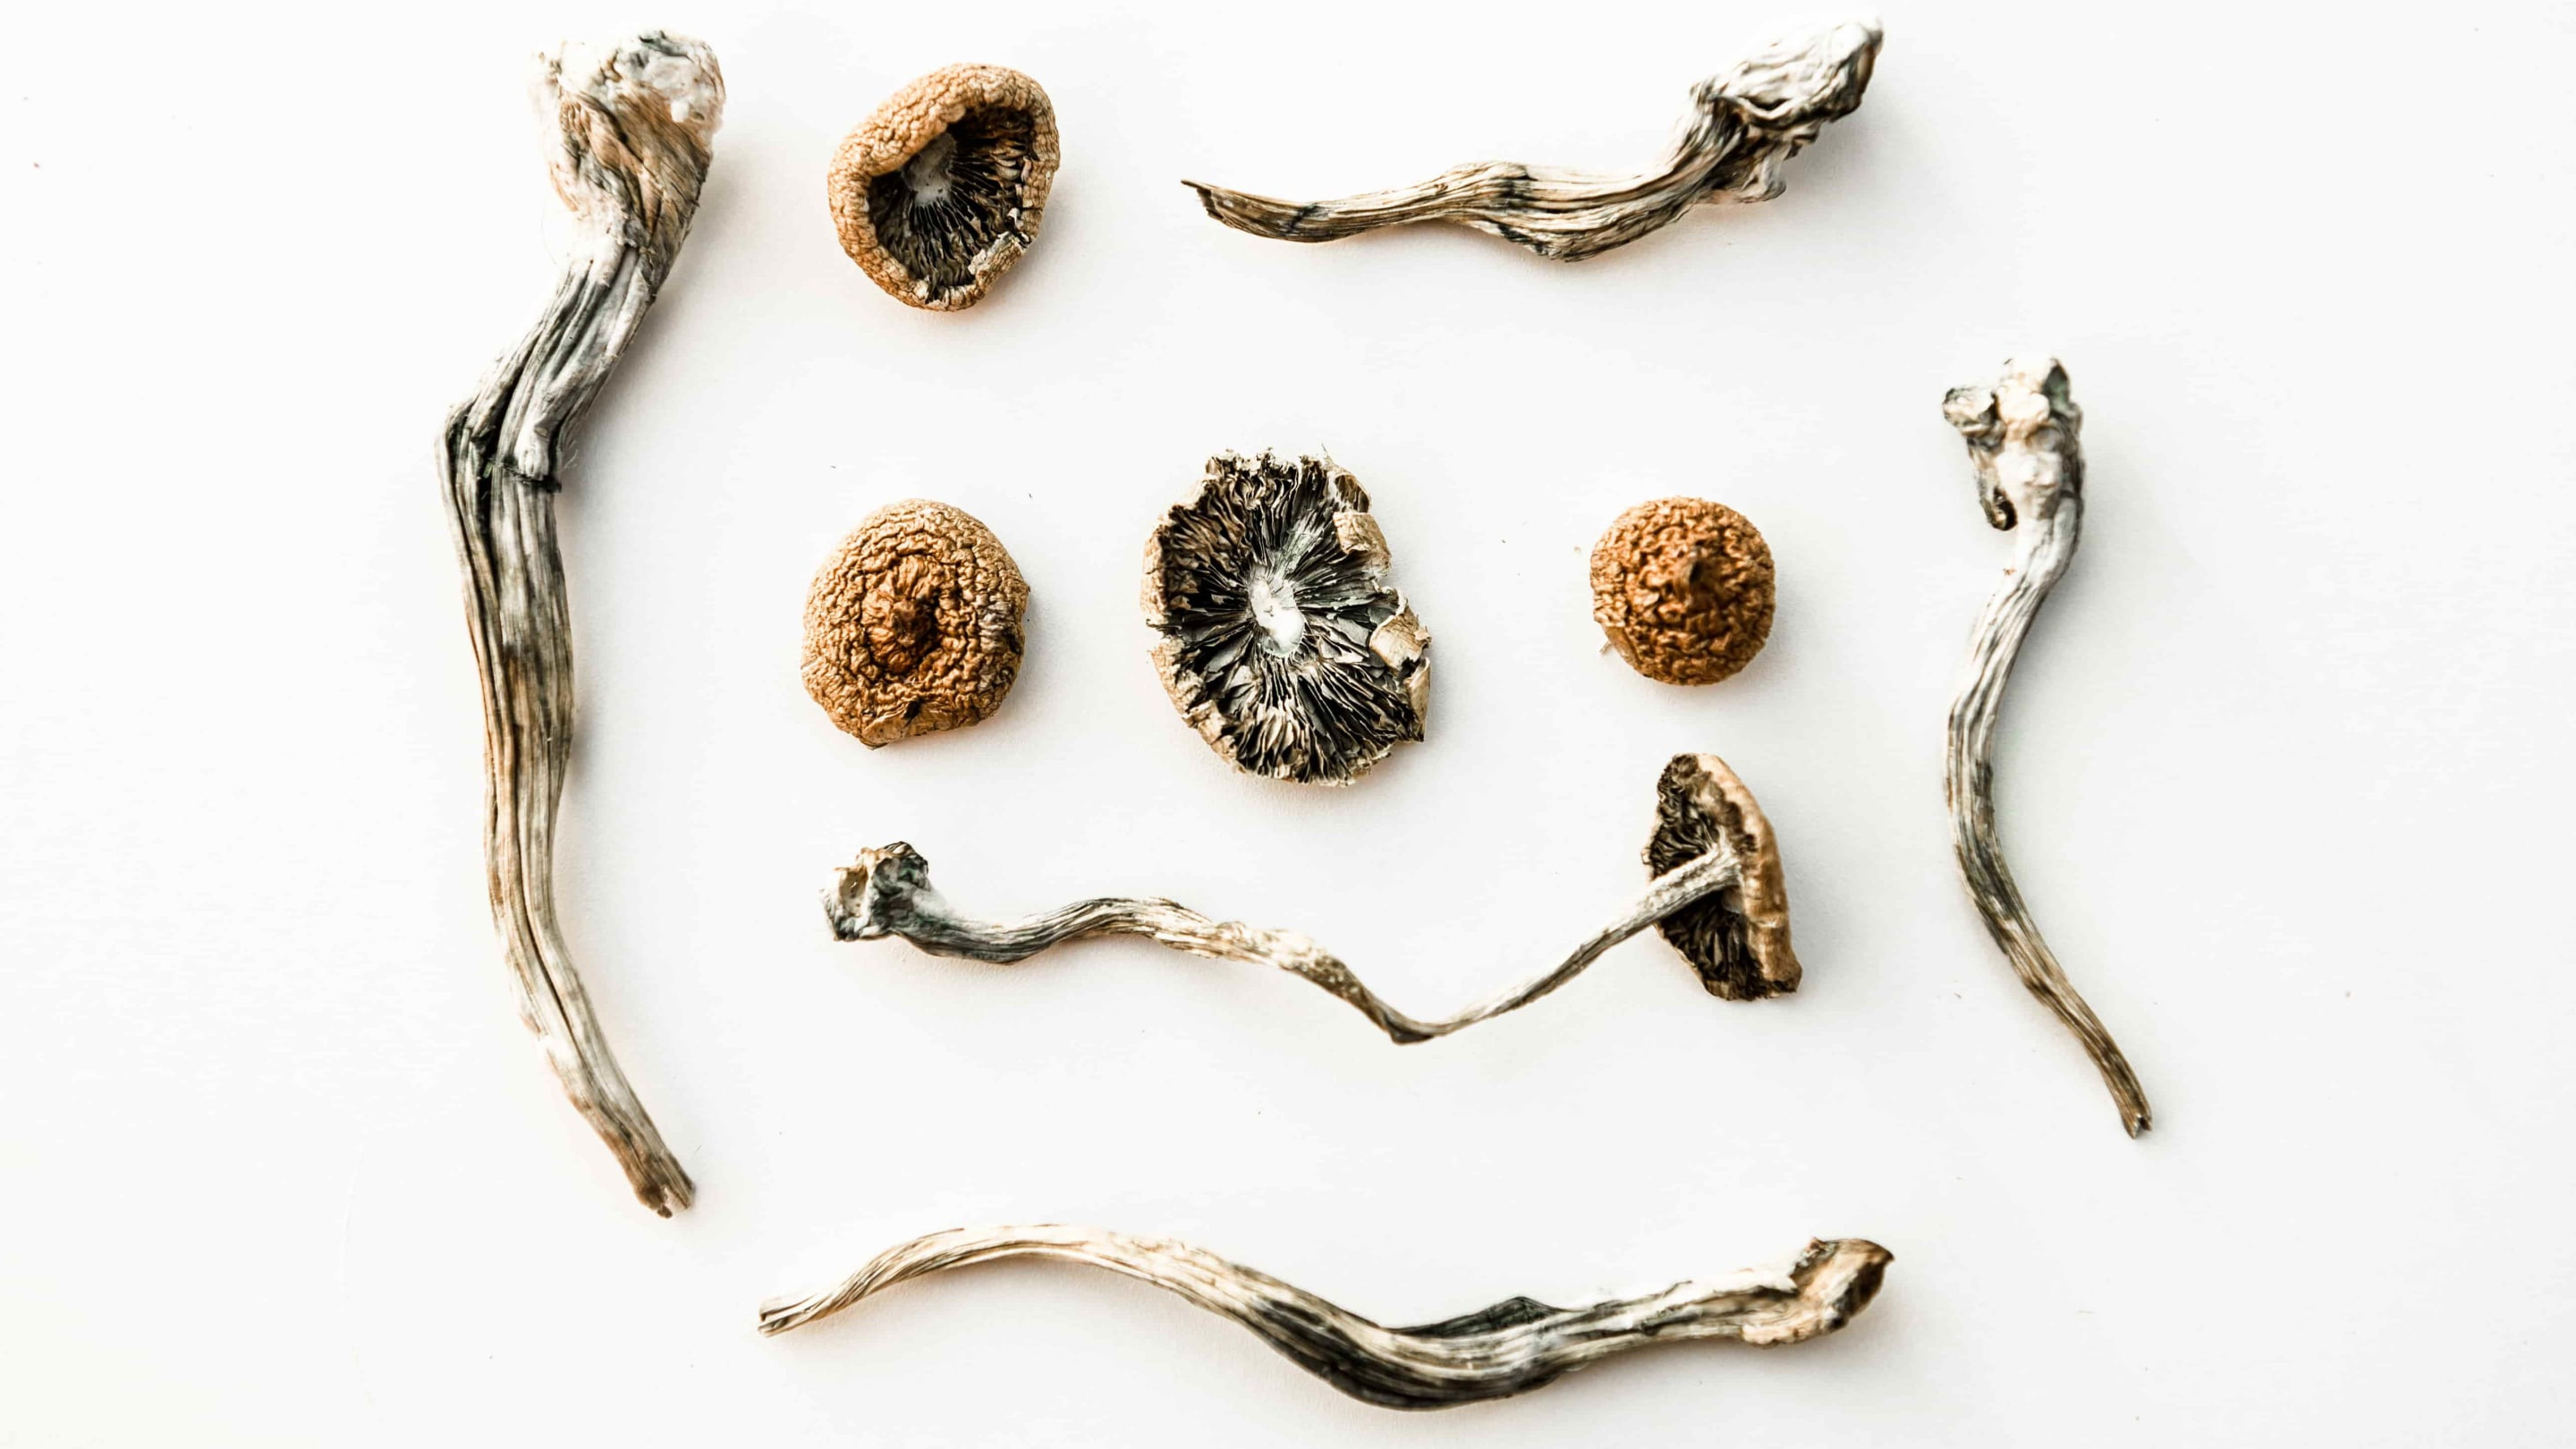 New Study: Is Natural Psilocybin As Good As Synthetic Psilocybin?